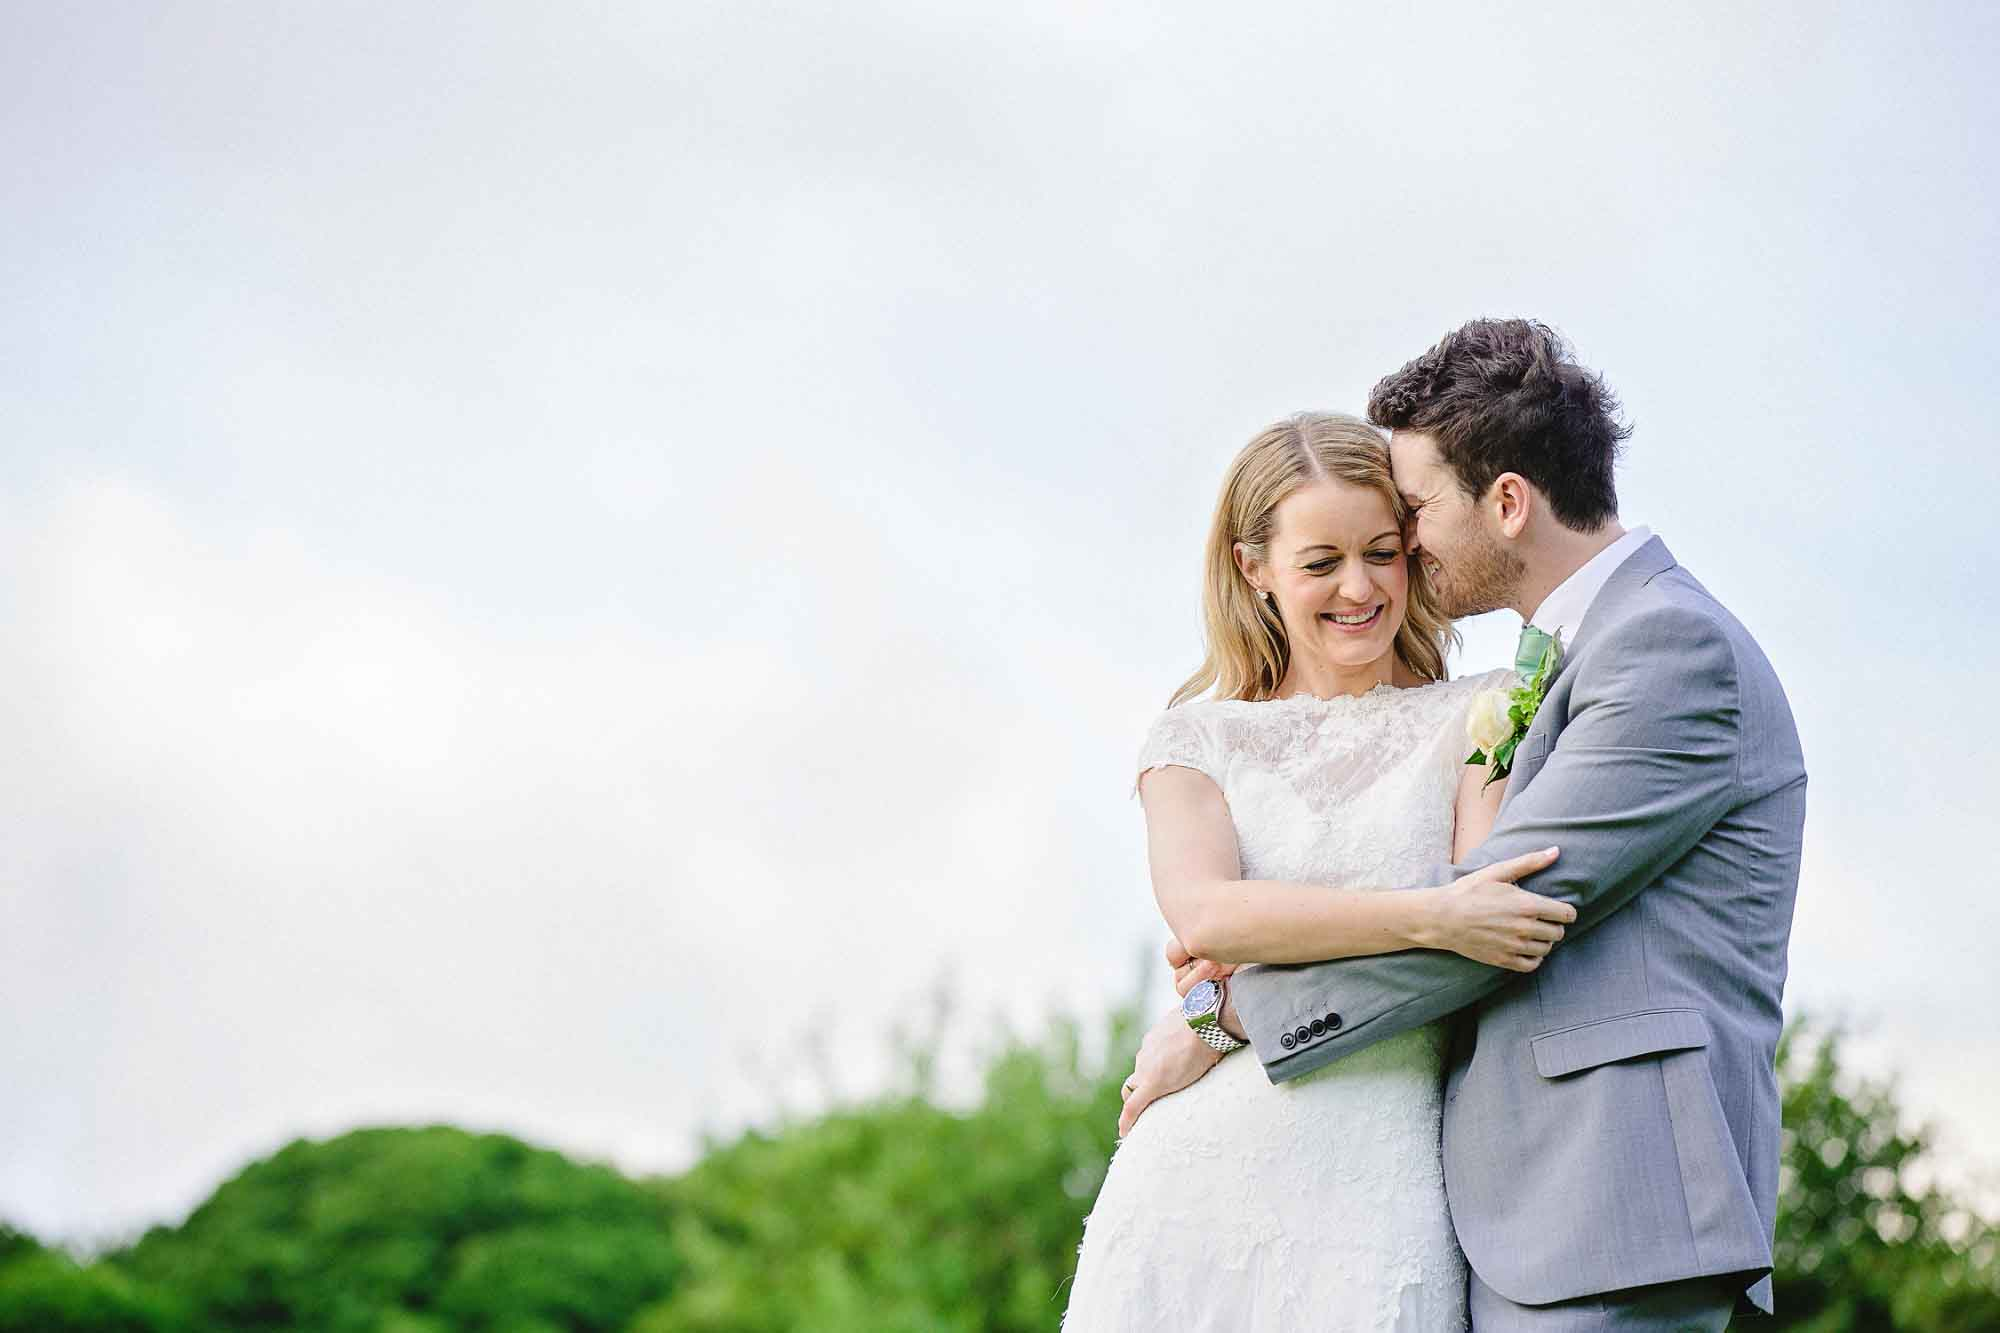 mike & claire - houghwood golf club wigan